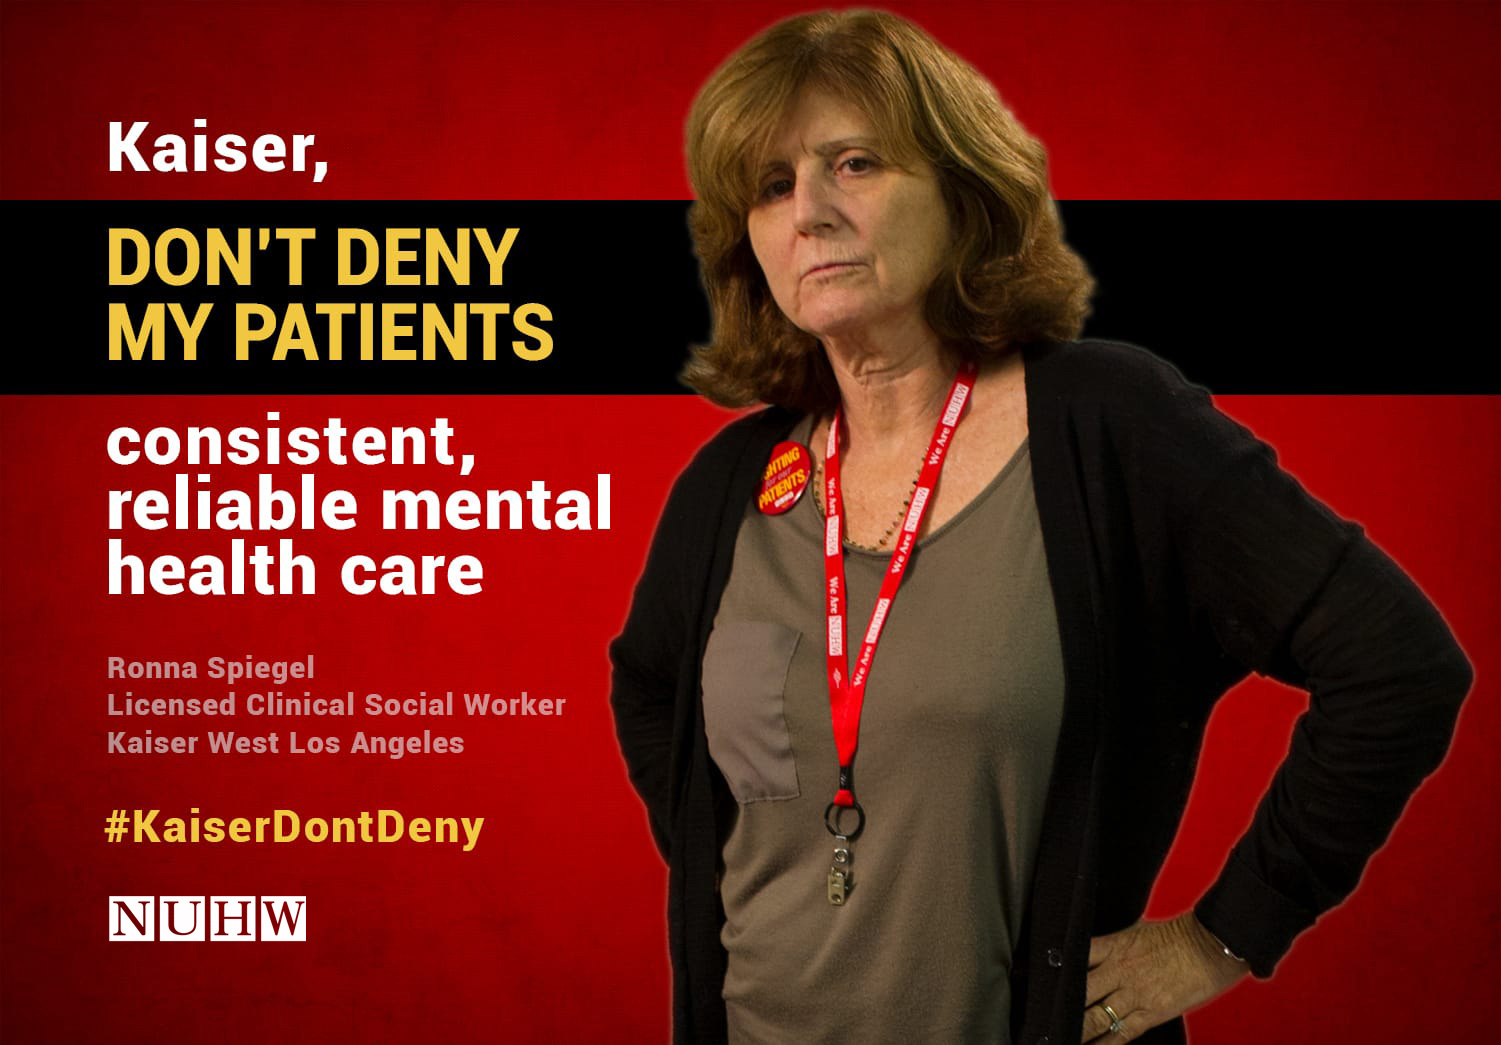 Kaiser, don't deny my patients consistent, reliable mental health care. -- Ronna Spiegel, Licensed Clinical Social Worker, Kaiser West Los Angeles